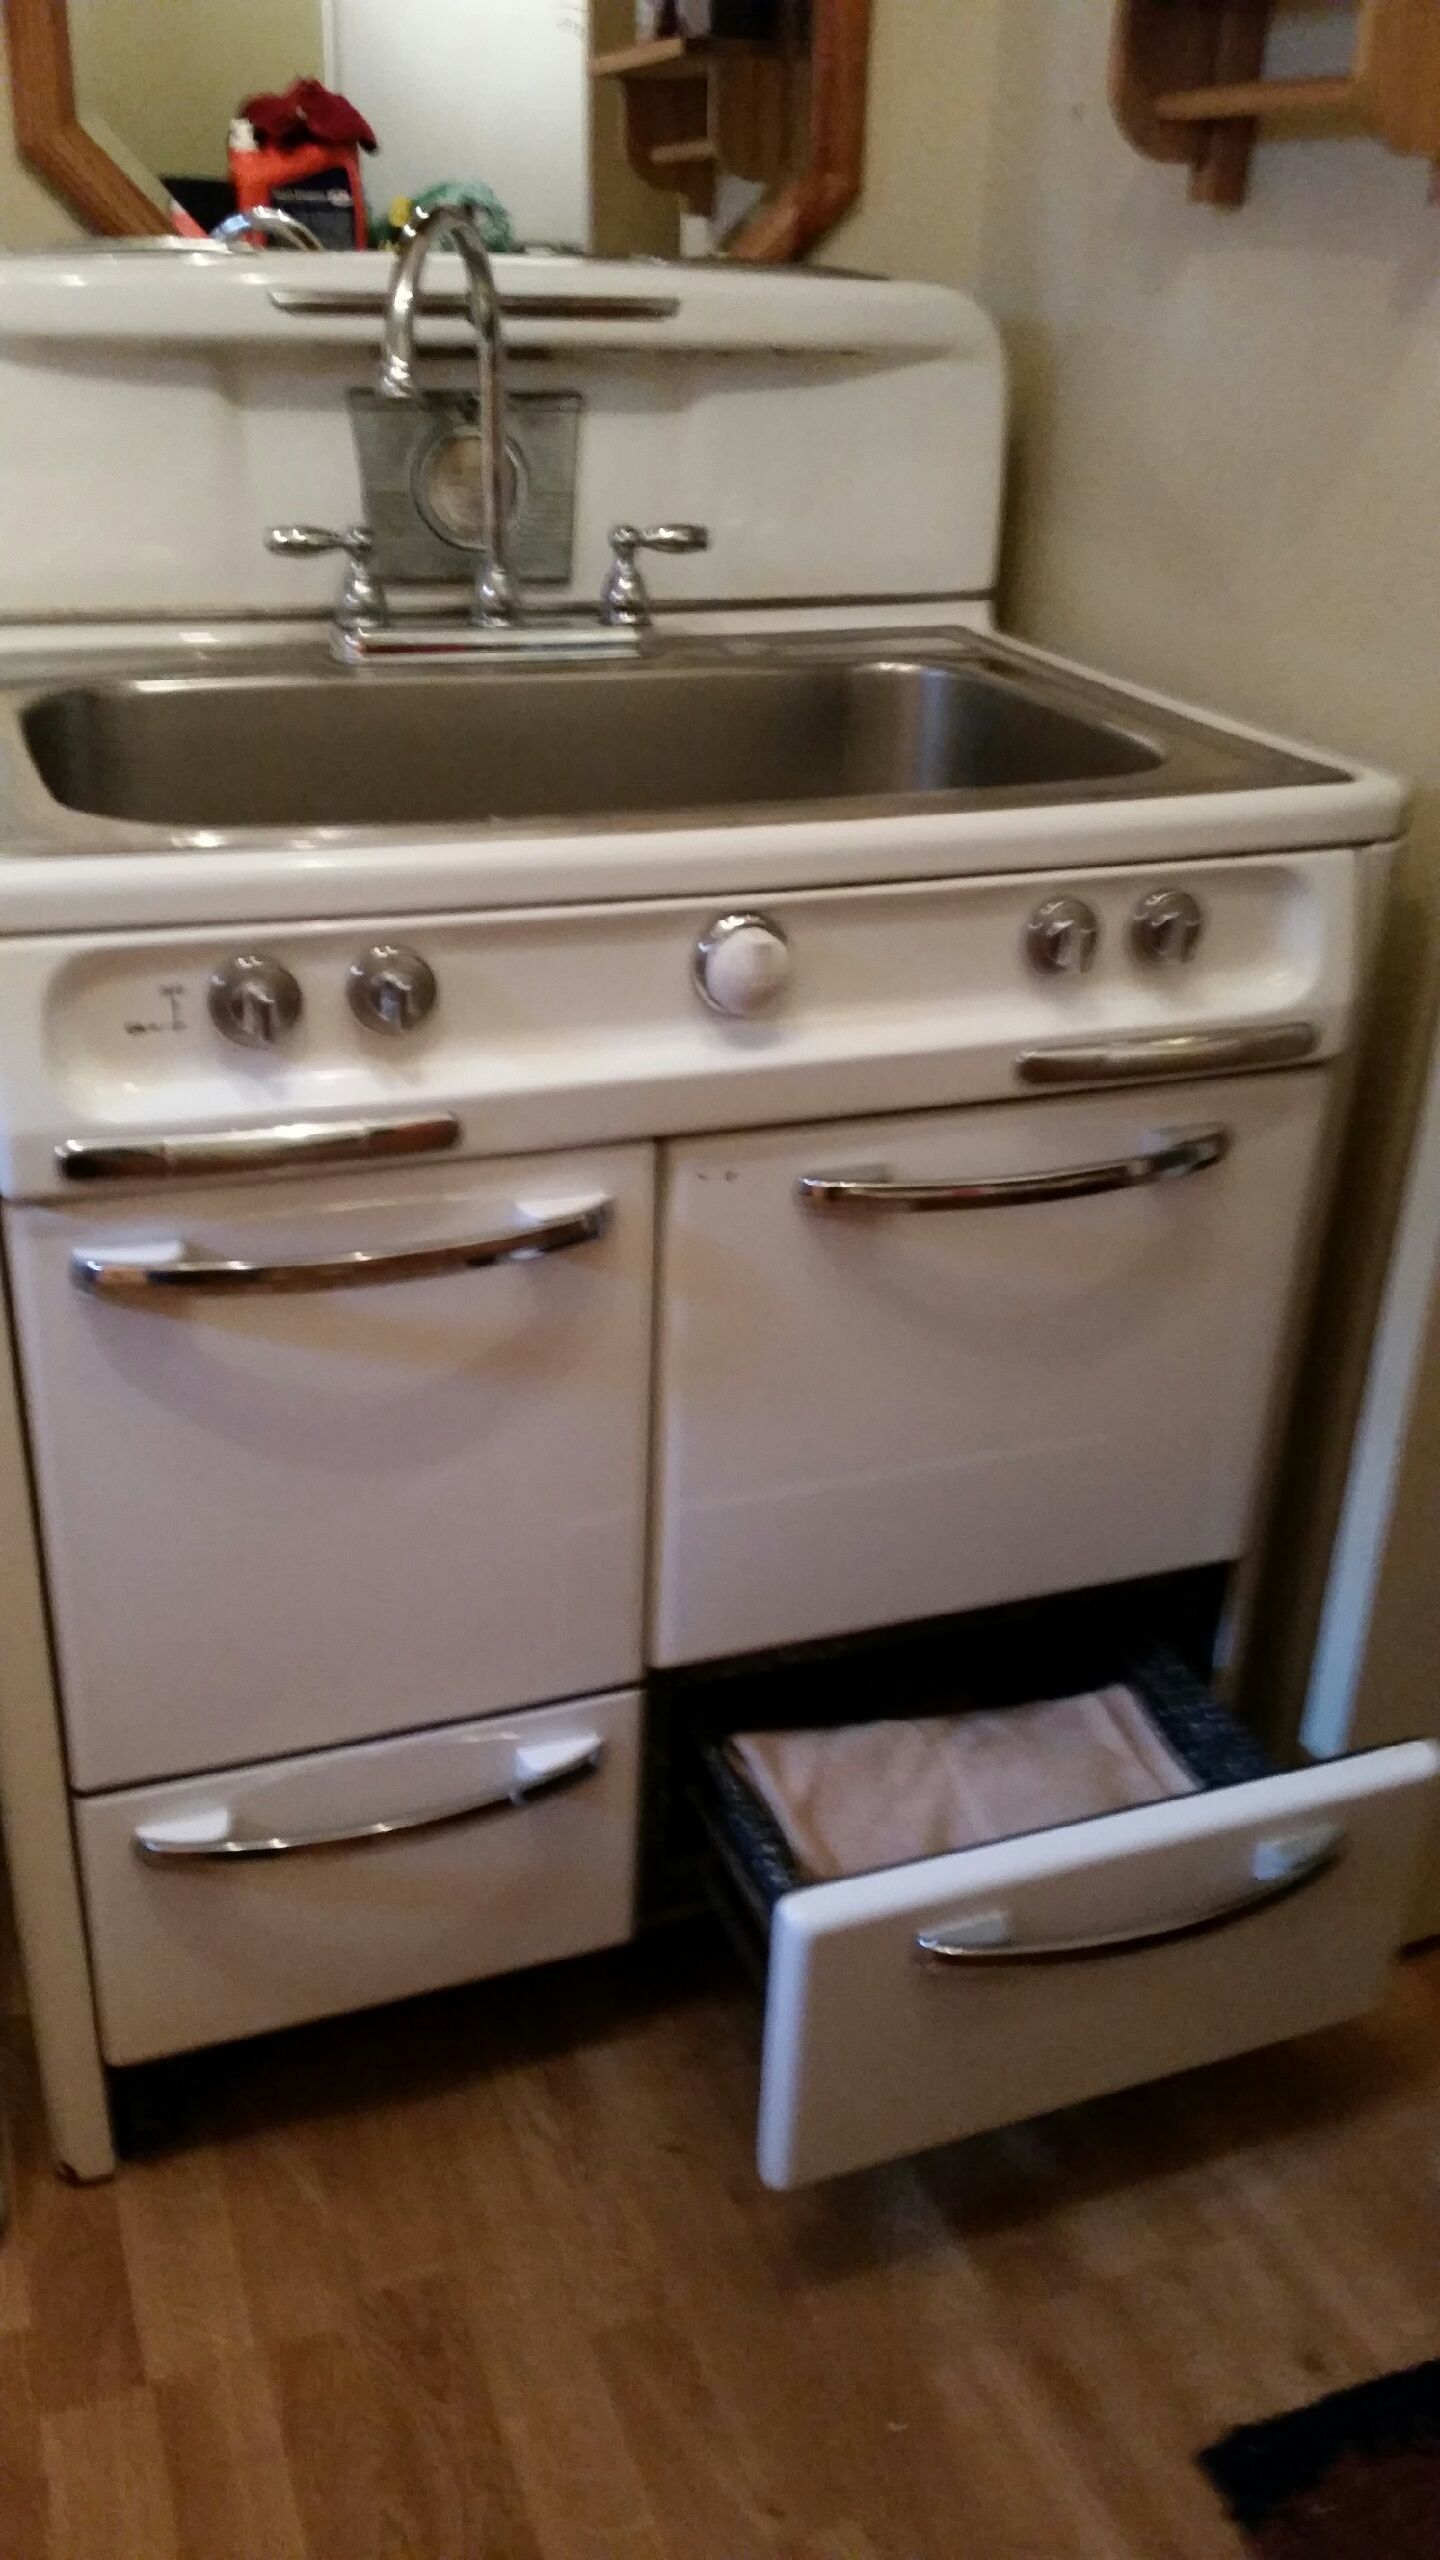 Farm House Sink,Rehabbed, Upcycle, Transform, Repurpose, Revamp, Refurbished, Laundry Room